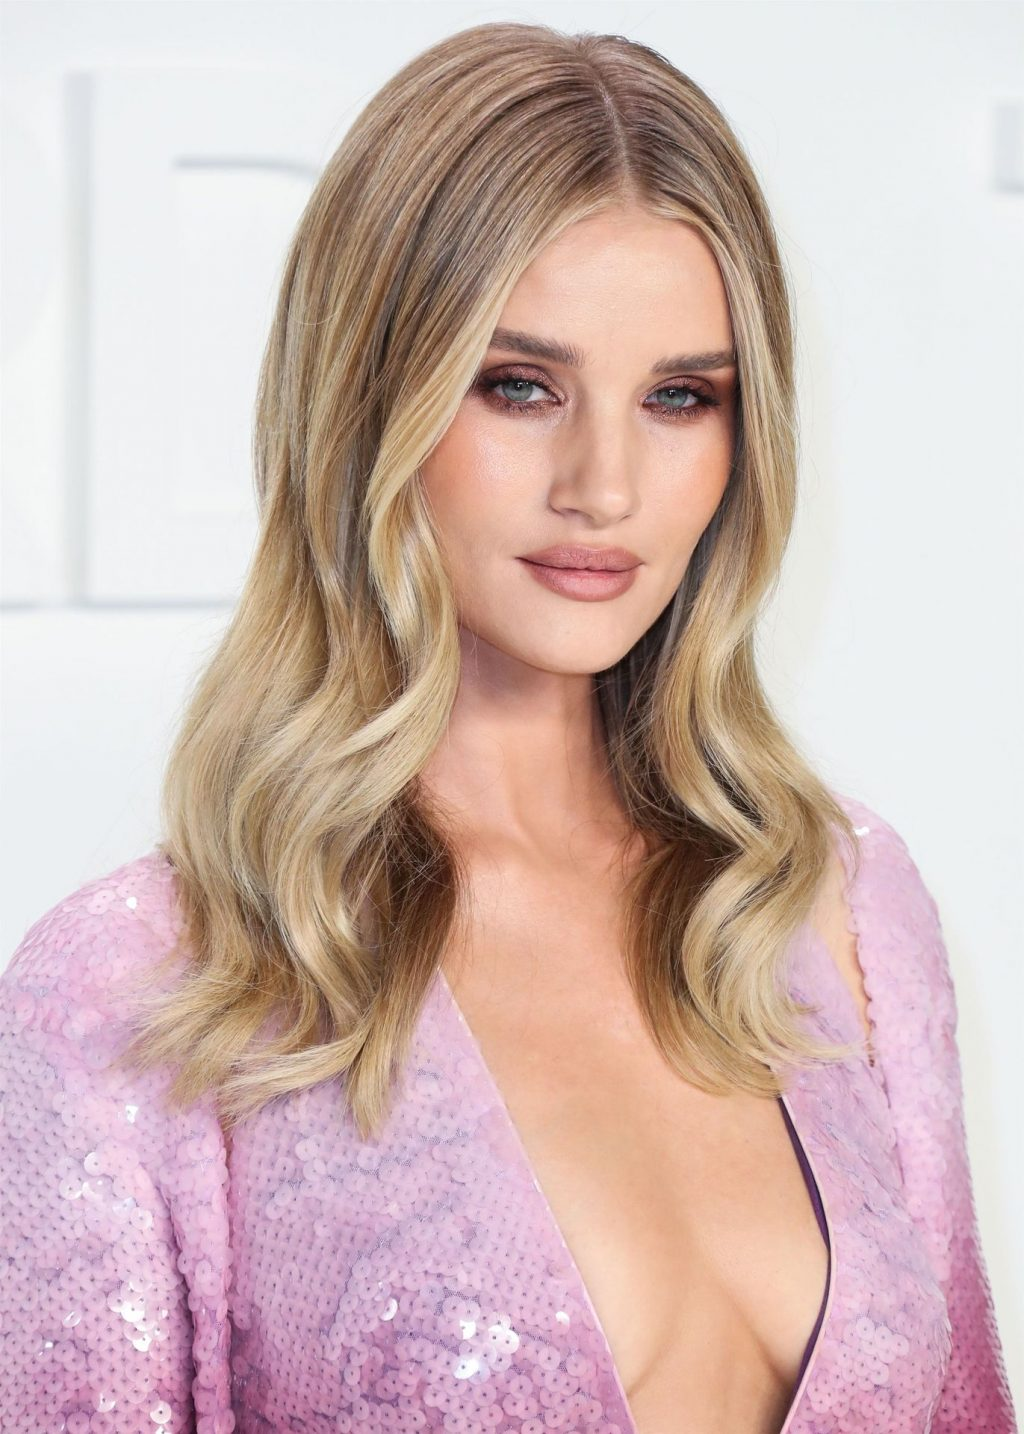 Rosie Huntington Whiteley Sexy The Fappening Blog 49 1024x1434 - Rosie Huntington-Whiteley Shows Her Cleavage at the Tom Ford Fashion Show (115 Photos)